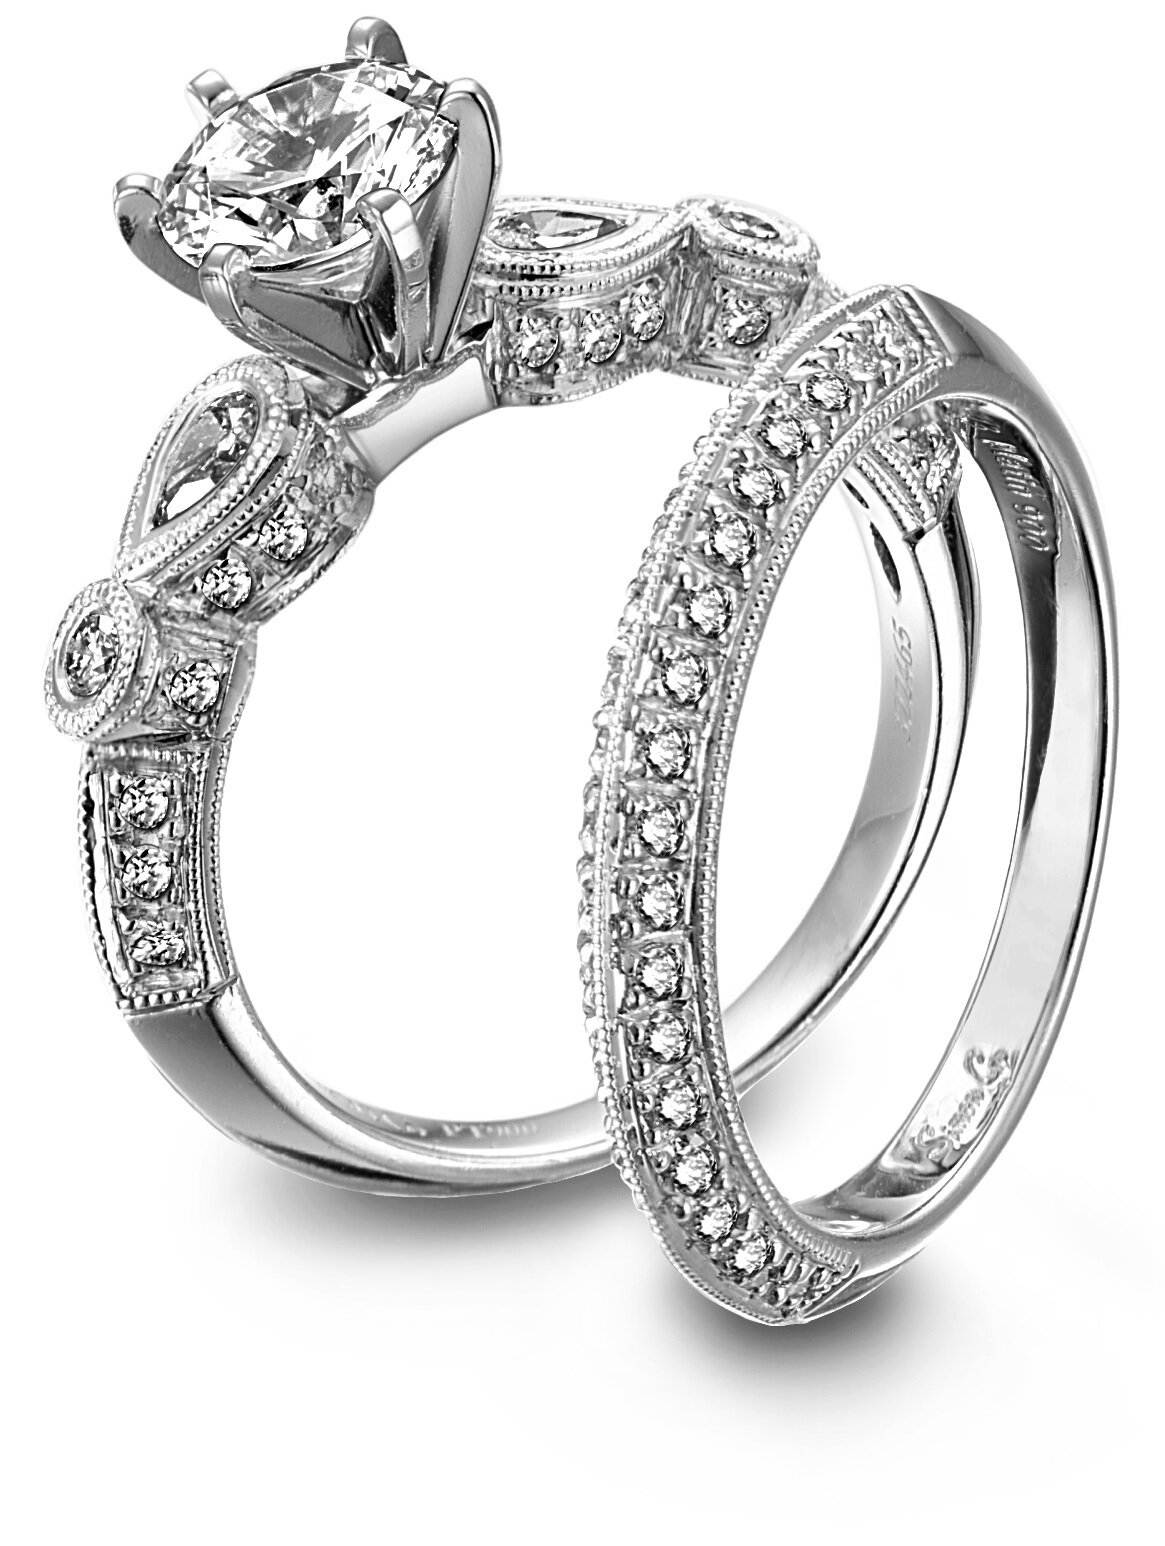 15 Examples Of Brilliant Wedding Rings  Mostbeautifulthings